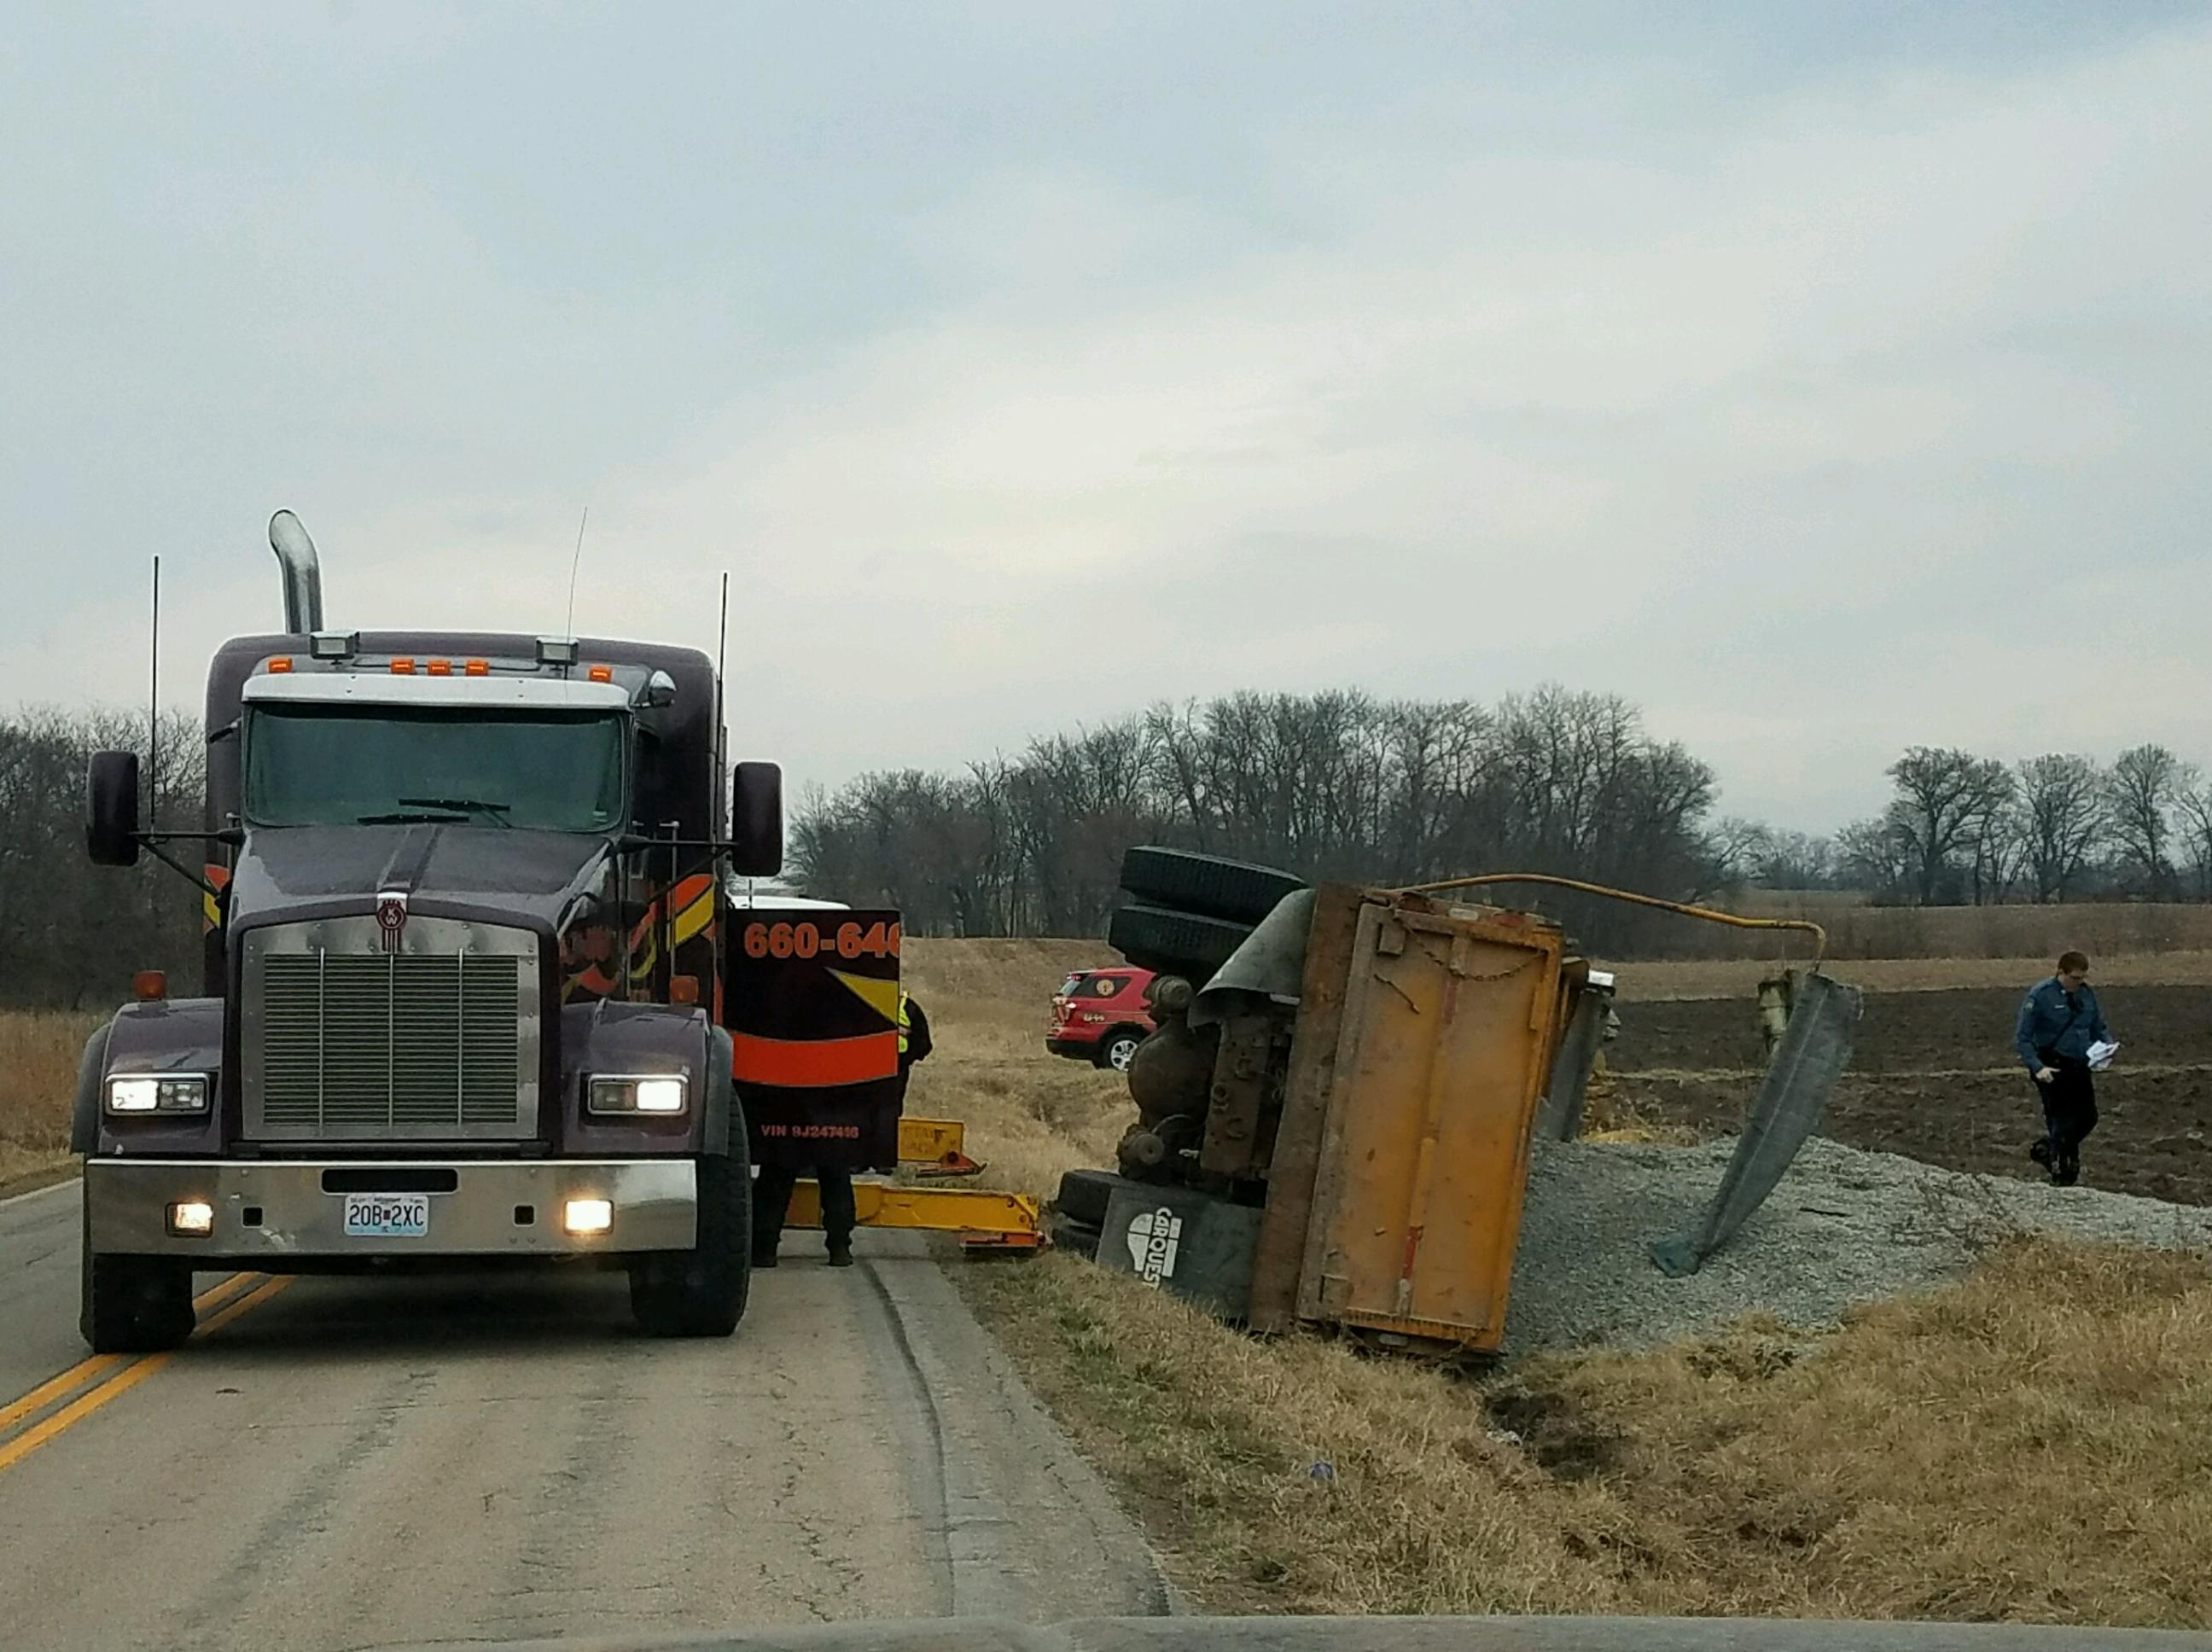 Unconfirmed accident reported on Z Highway in Carroll County UPDATE — ROADWAY CLEARED AND OPEN